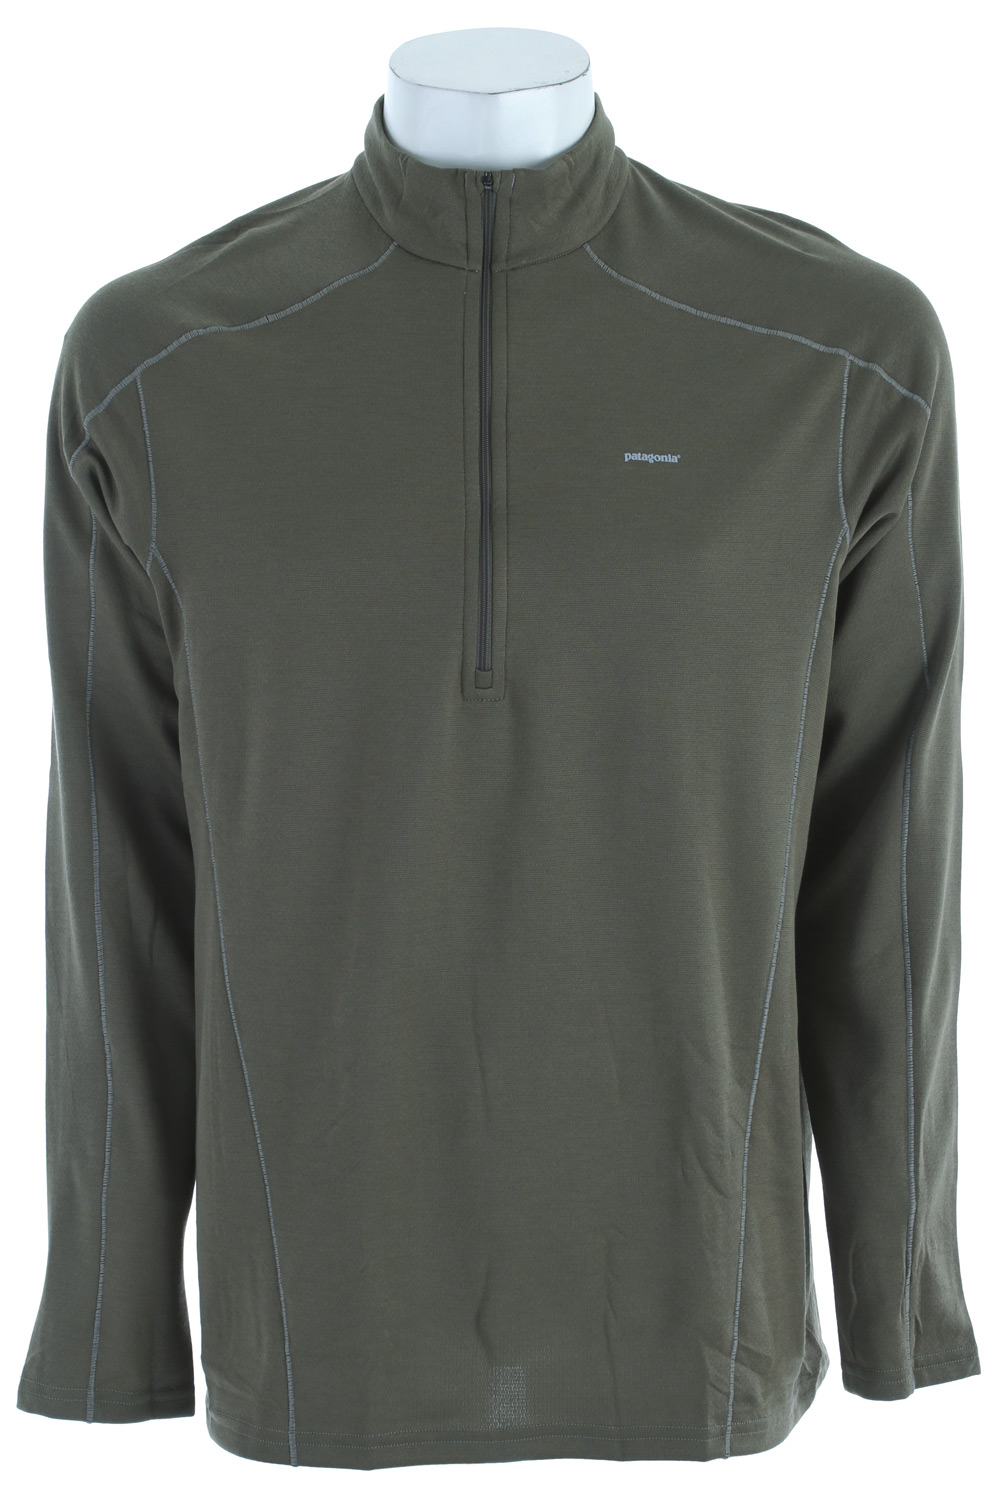 Our most versatile synthetic baselayer keeps you dry and warmKey Features of the Patagonia Capilene 3 Midweight Zip-Neck Baselayer Top: Stretchy, double-weave fabric wicks extremely well Durable smooth jersey face slides easily beneath layers Fabric is brushed for warmth, softness and compressibility; provides excellent insulation and breathability Zip-neck for easy climate control is backed by draft flap and zipper garage Raglan sleeves and single-piece shoulder panel merge out of the way of pack straps Side seams are rolled forward for comfort under hip belt Machine-wash cold, tumble dry at low temperature Slim fit (9.2 oz) 261 g fabric: Solids: 5.4-oz Polartec Power Dry 100% polyester double knit (65% recycled). Heathers: 5.4-oz Polartec Power Dry 100% polyester double knit (51% recycled), both with Gladiodor odor control for the garment - $39.95